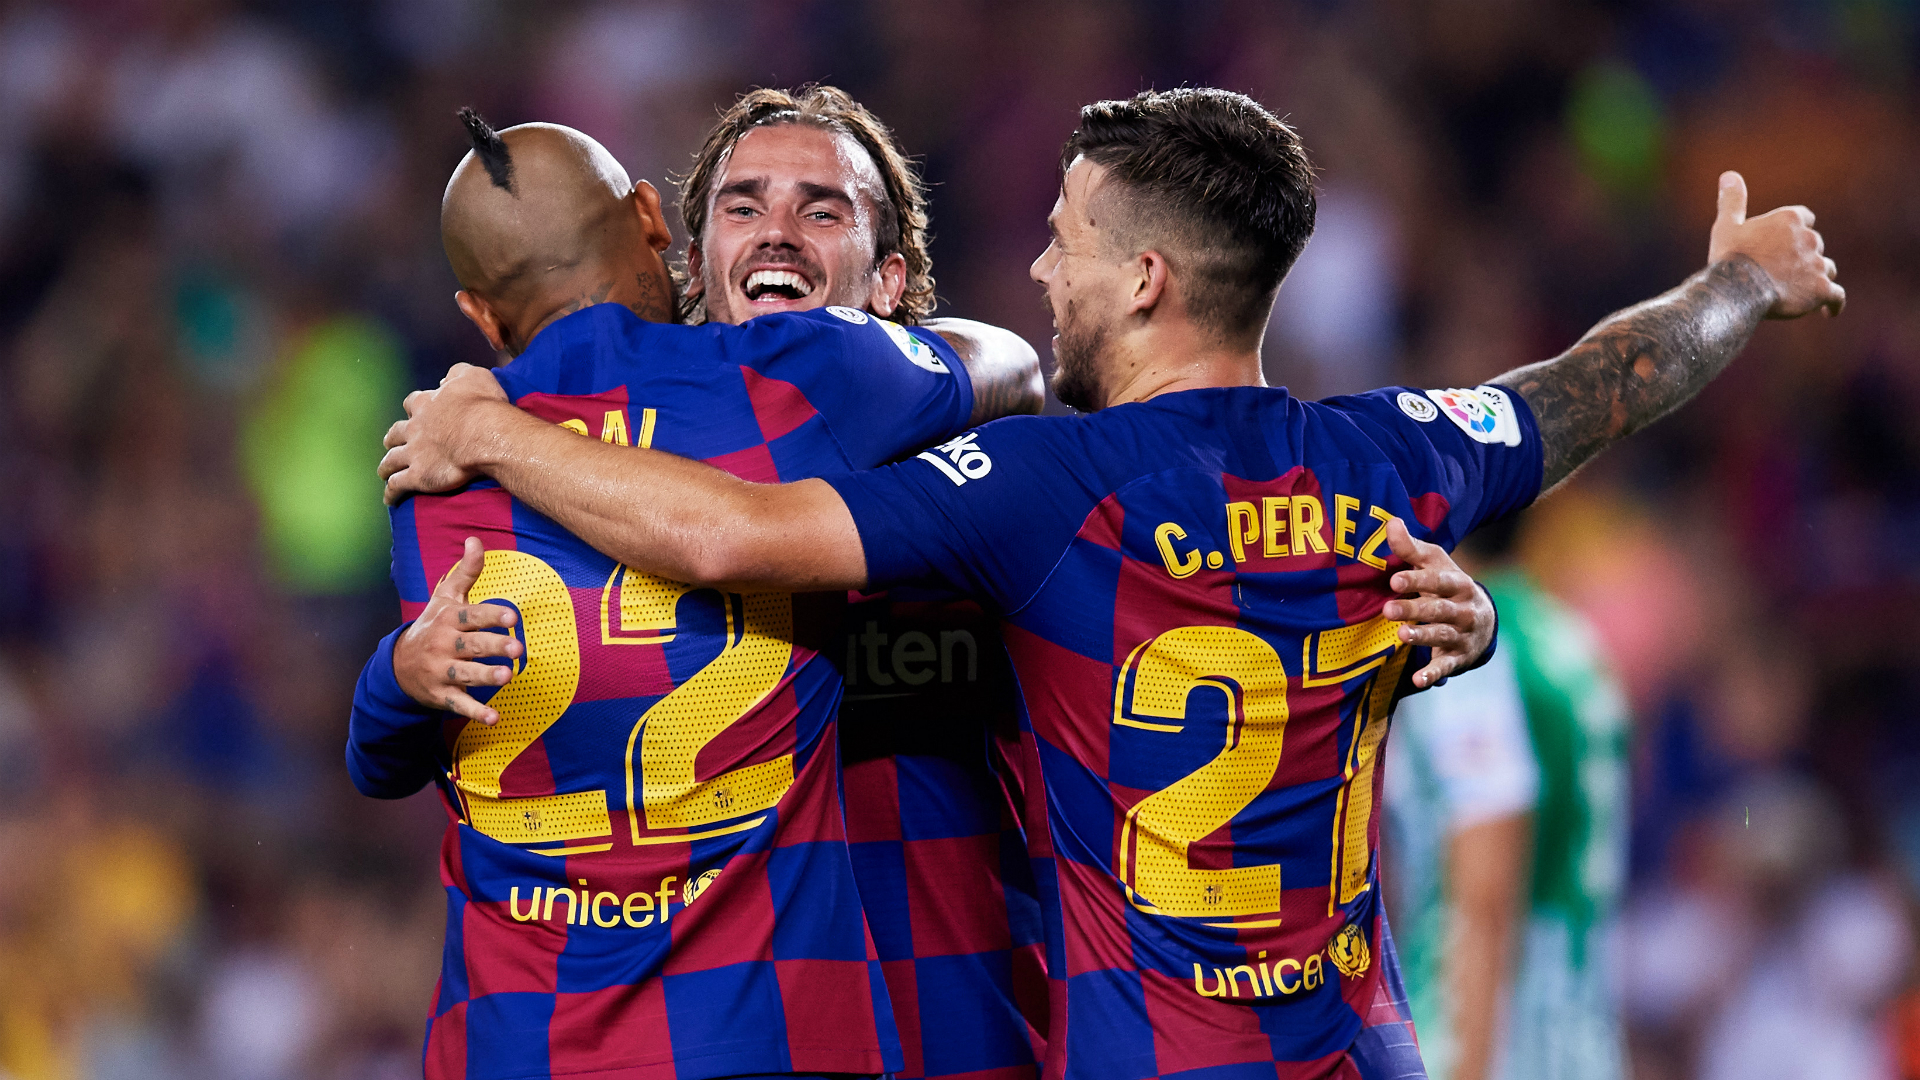 Getafe CF vs Barcelona, La Liga 2019 Free Live Streaming Online & Match Time in IST: How to Get Live Telecast on TV & Football Score Updates in India?